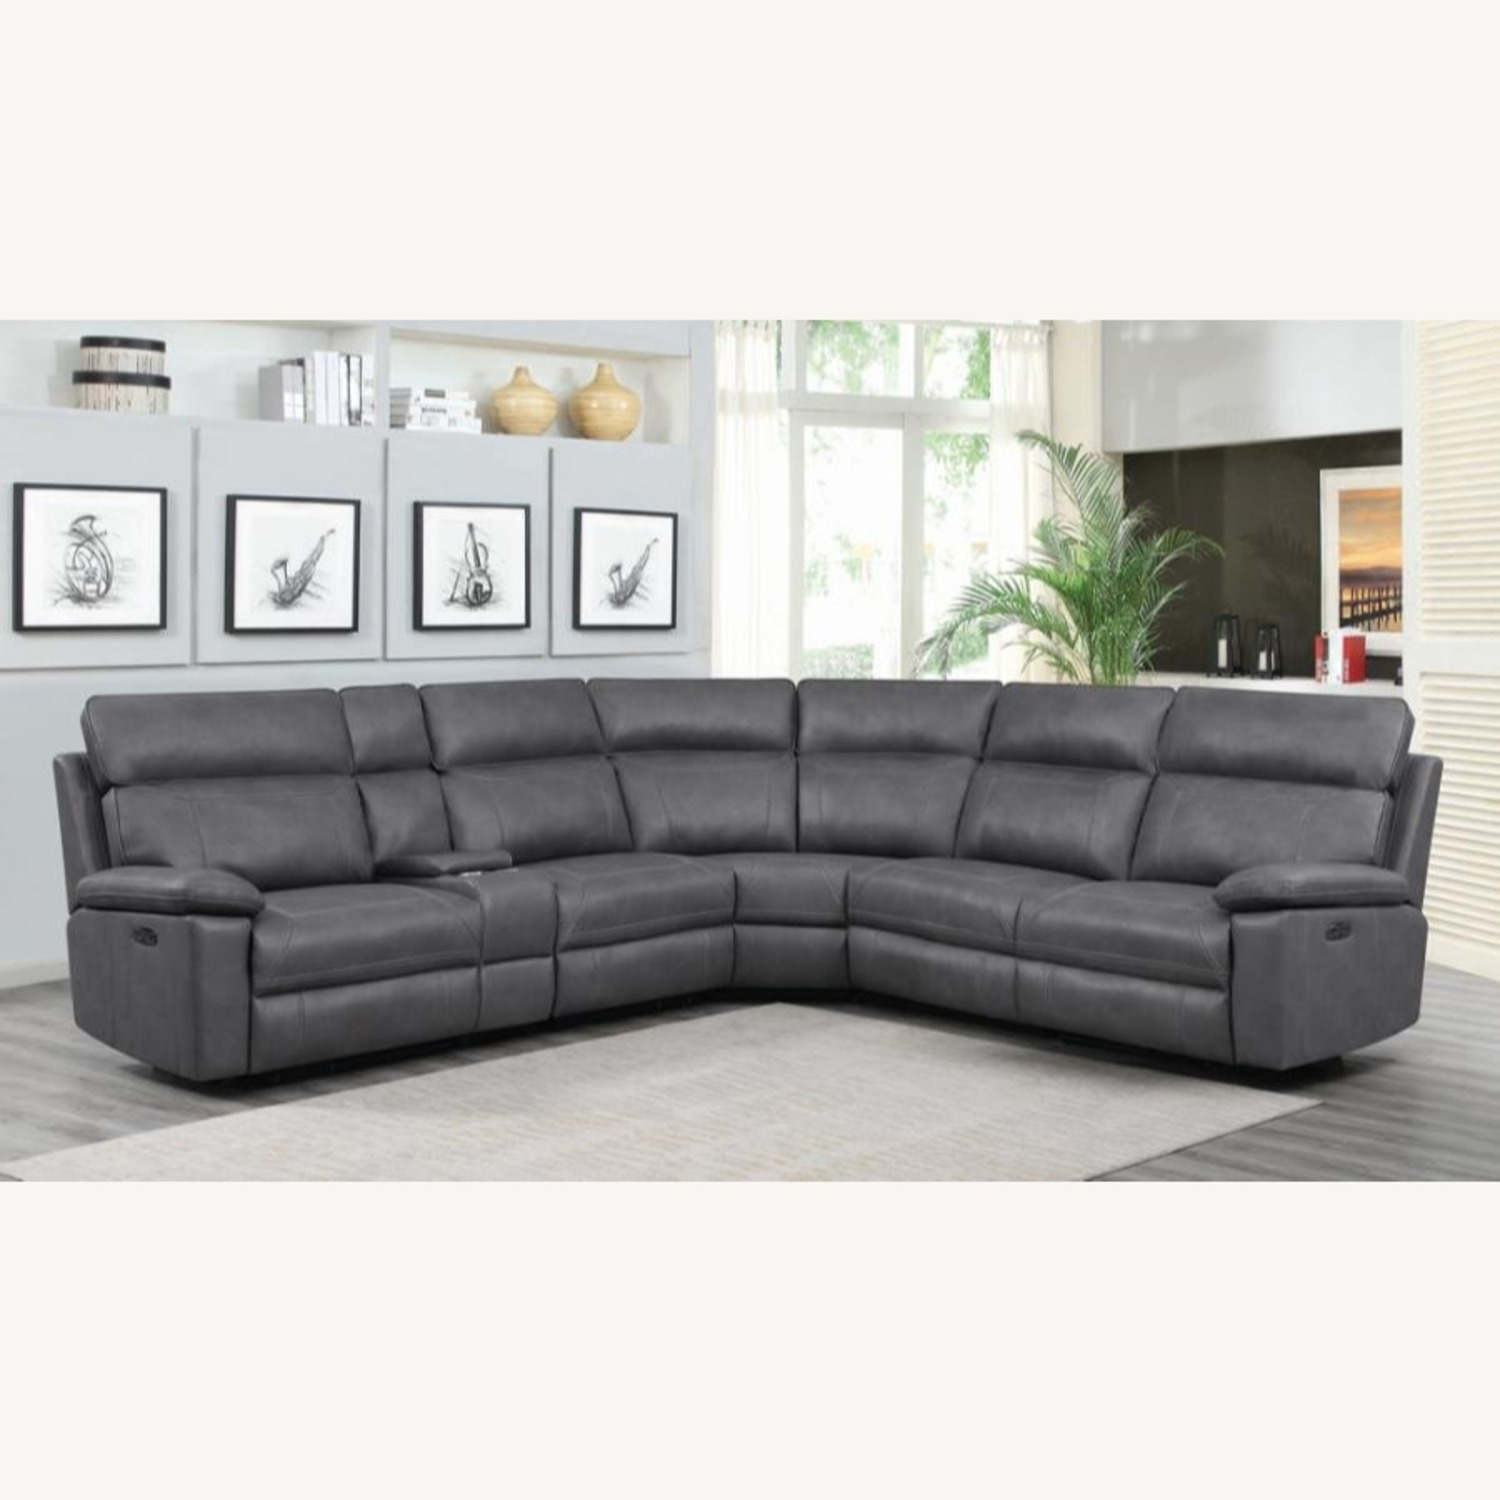 6-Piece Power2 Sectional In Grey Leatherette - image-9